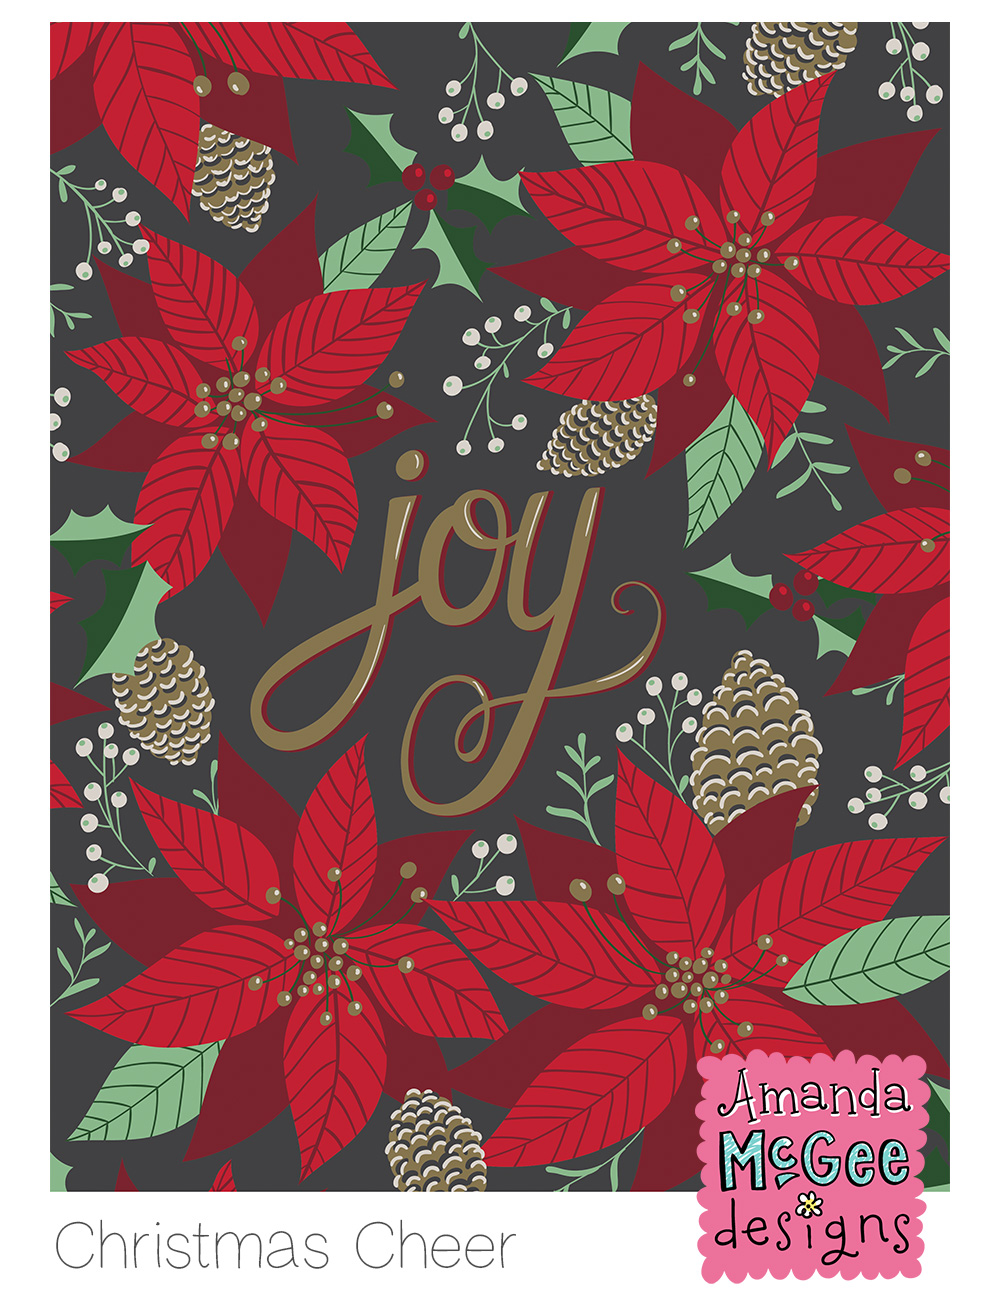 AmandaMcGee_SurfacePattern_ChristmasCheer-Poinsettias.jpg